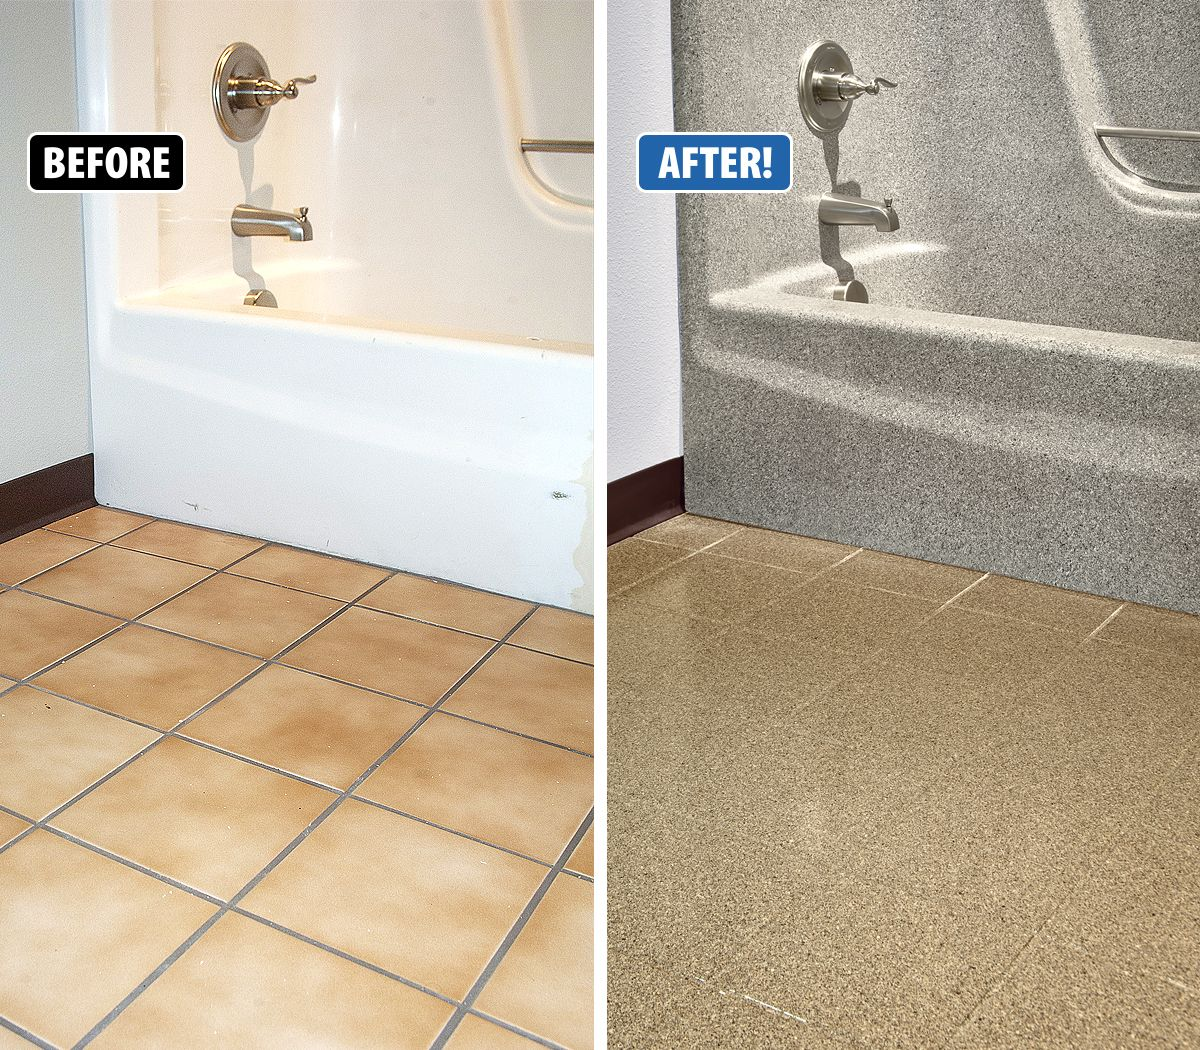 Miracle Method Surface Refinishing Is Extremely Durable And Works